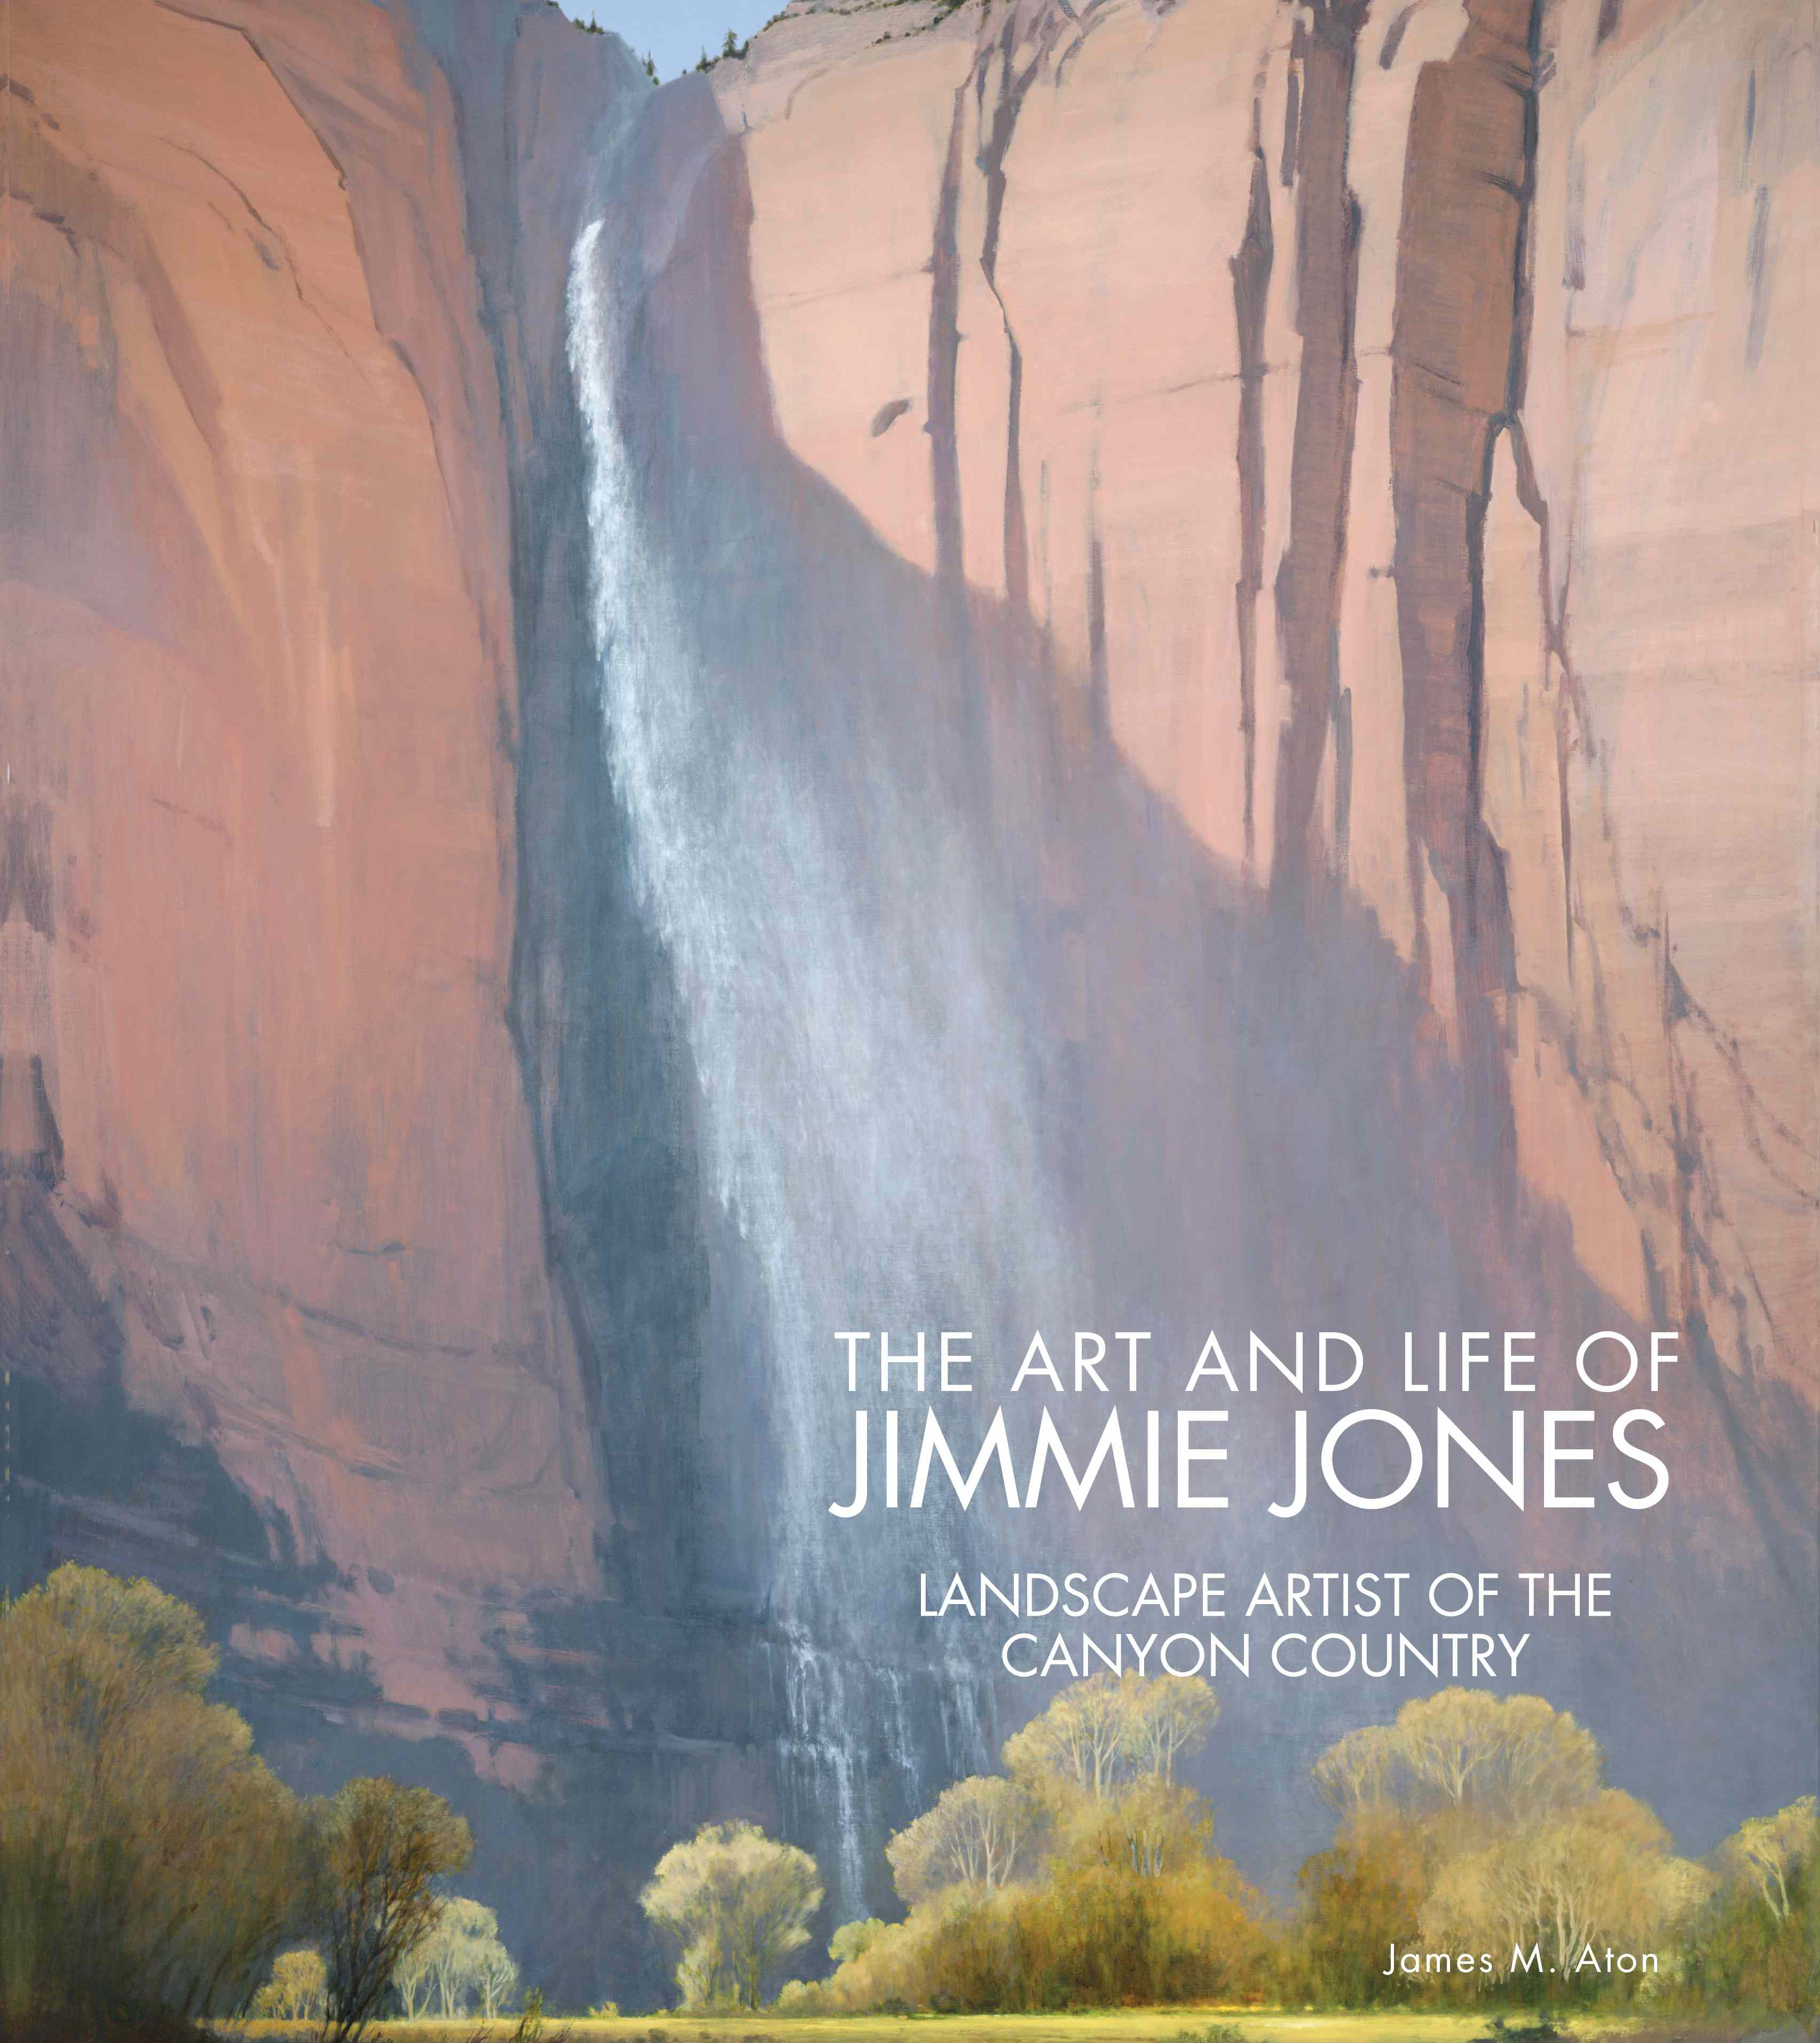 James M. Aton - Book Presentation and Signing - The Art and Life of Jimmie Jones